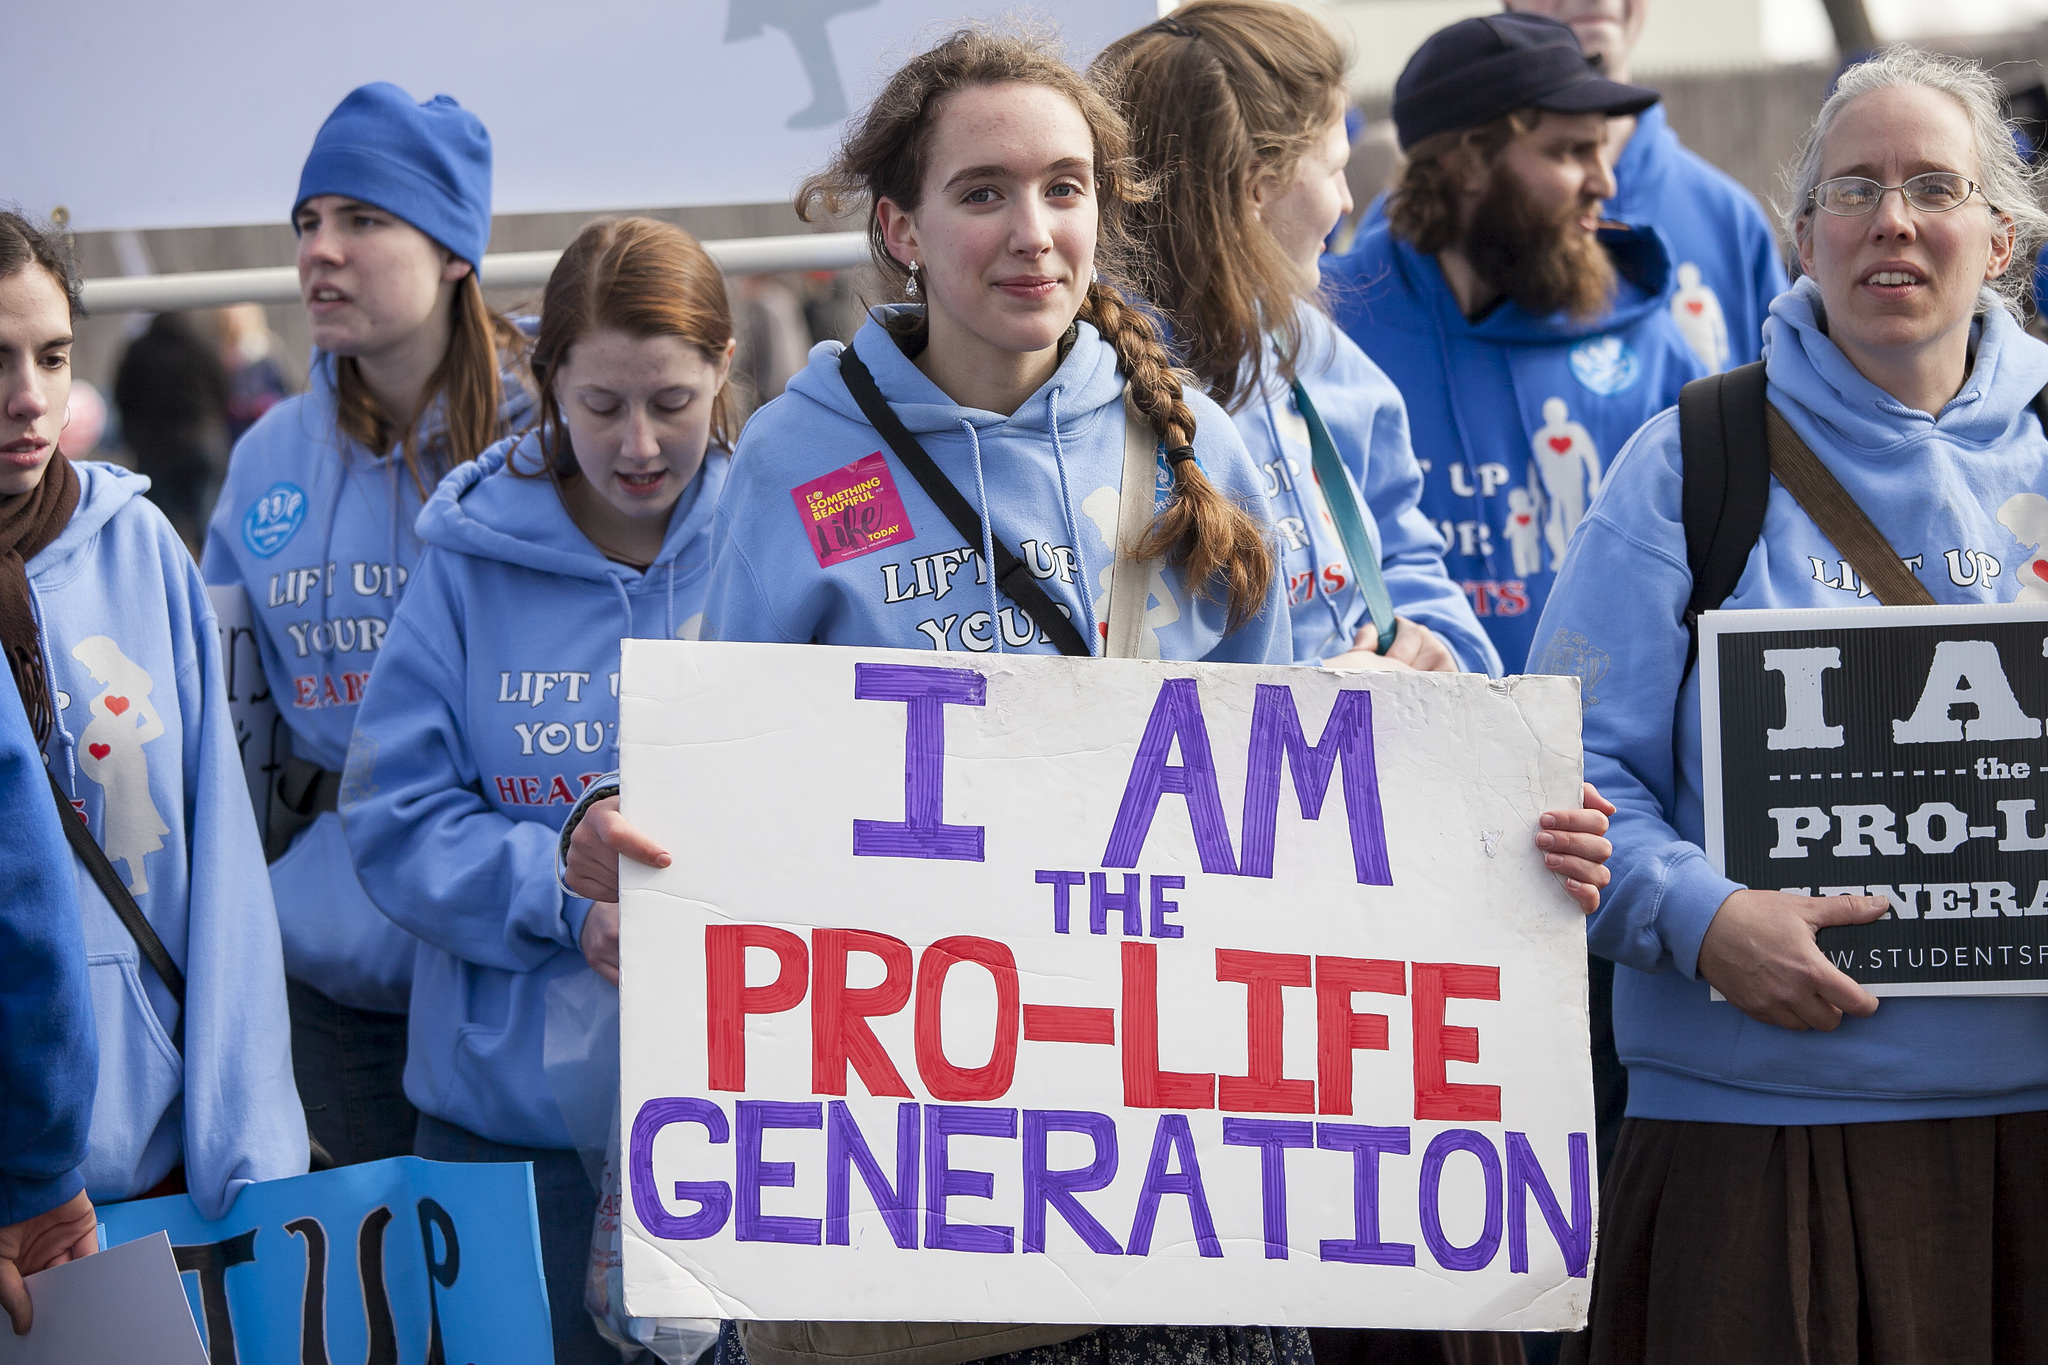 You might be pro-life